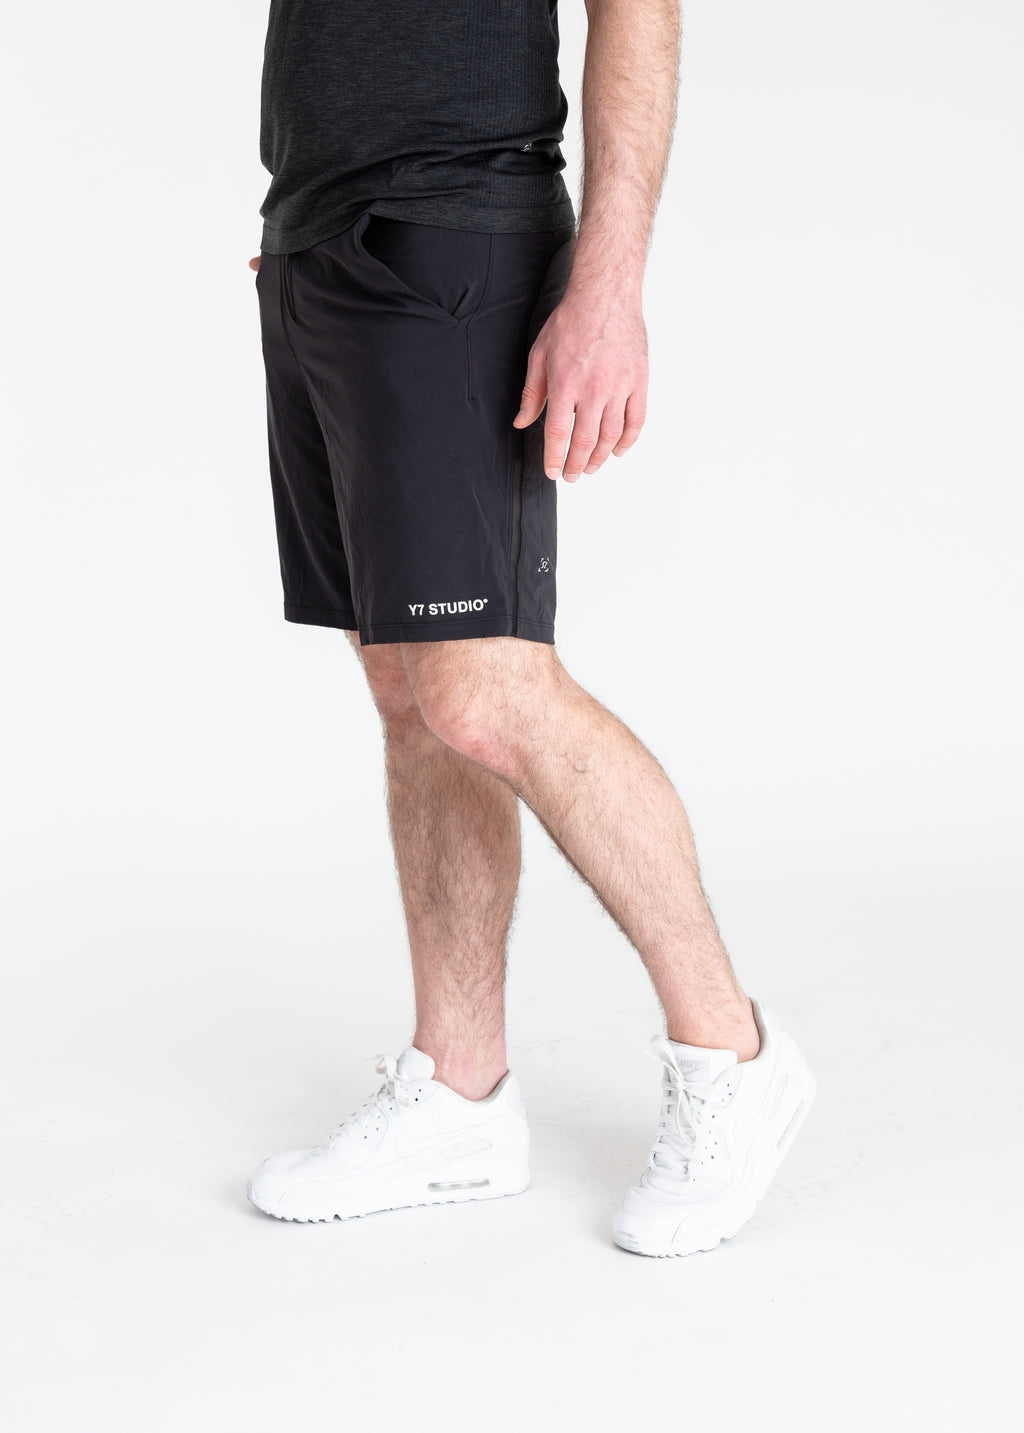 Y7 / Lululemon Pace Breaker Short